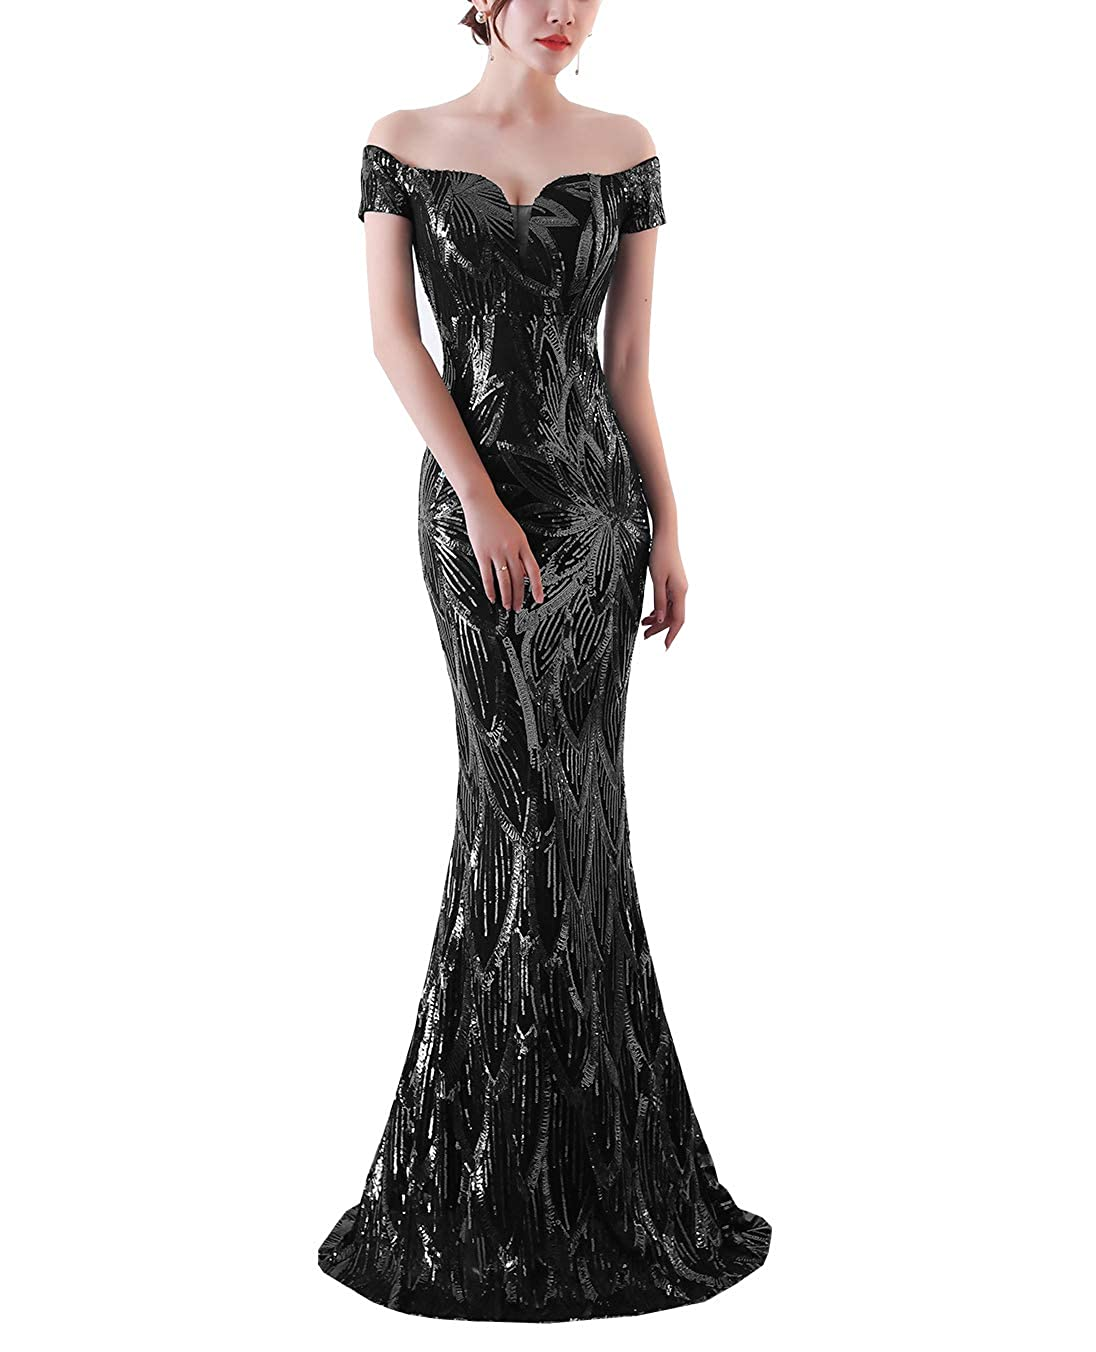 Black Women's Sexy Sweetheart Sequins Mermaid Long Evening Dresses Prom Gown for Party